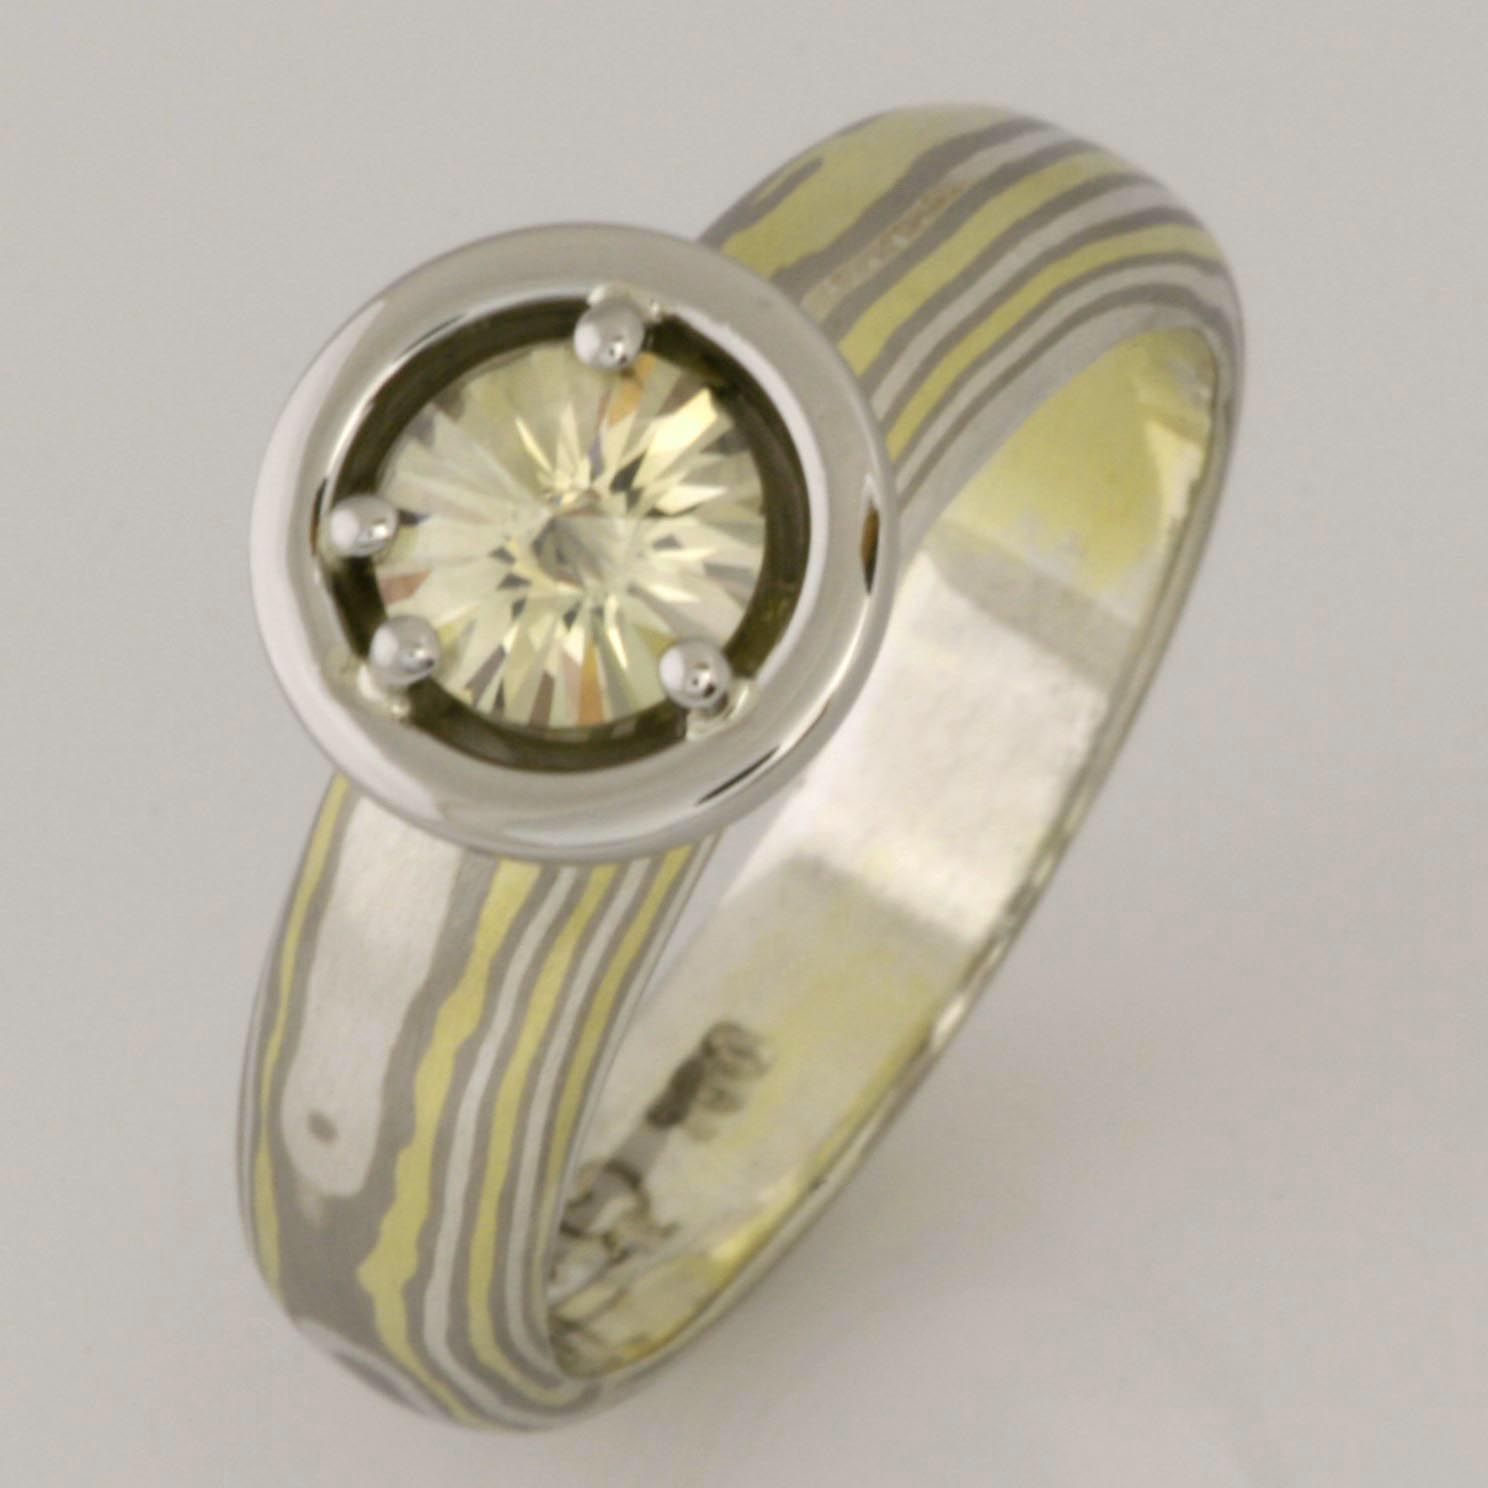 Handmade 18ct green gold, white gold and sterling silver ladies Mokume Gane ring with a Light Green coloured 'Spirit' cut diamond